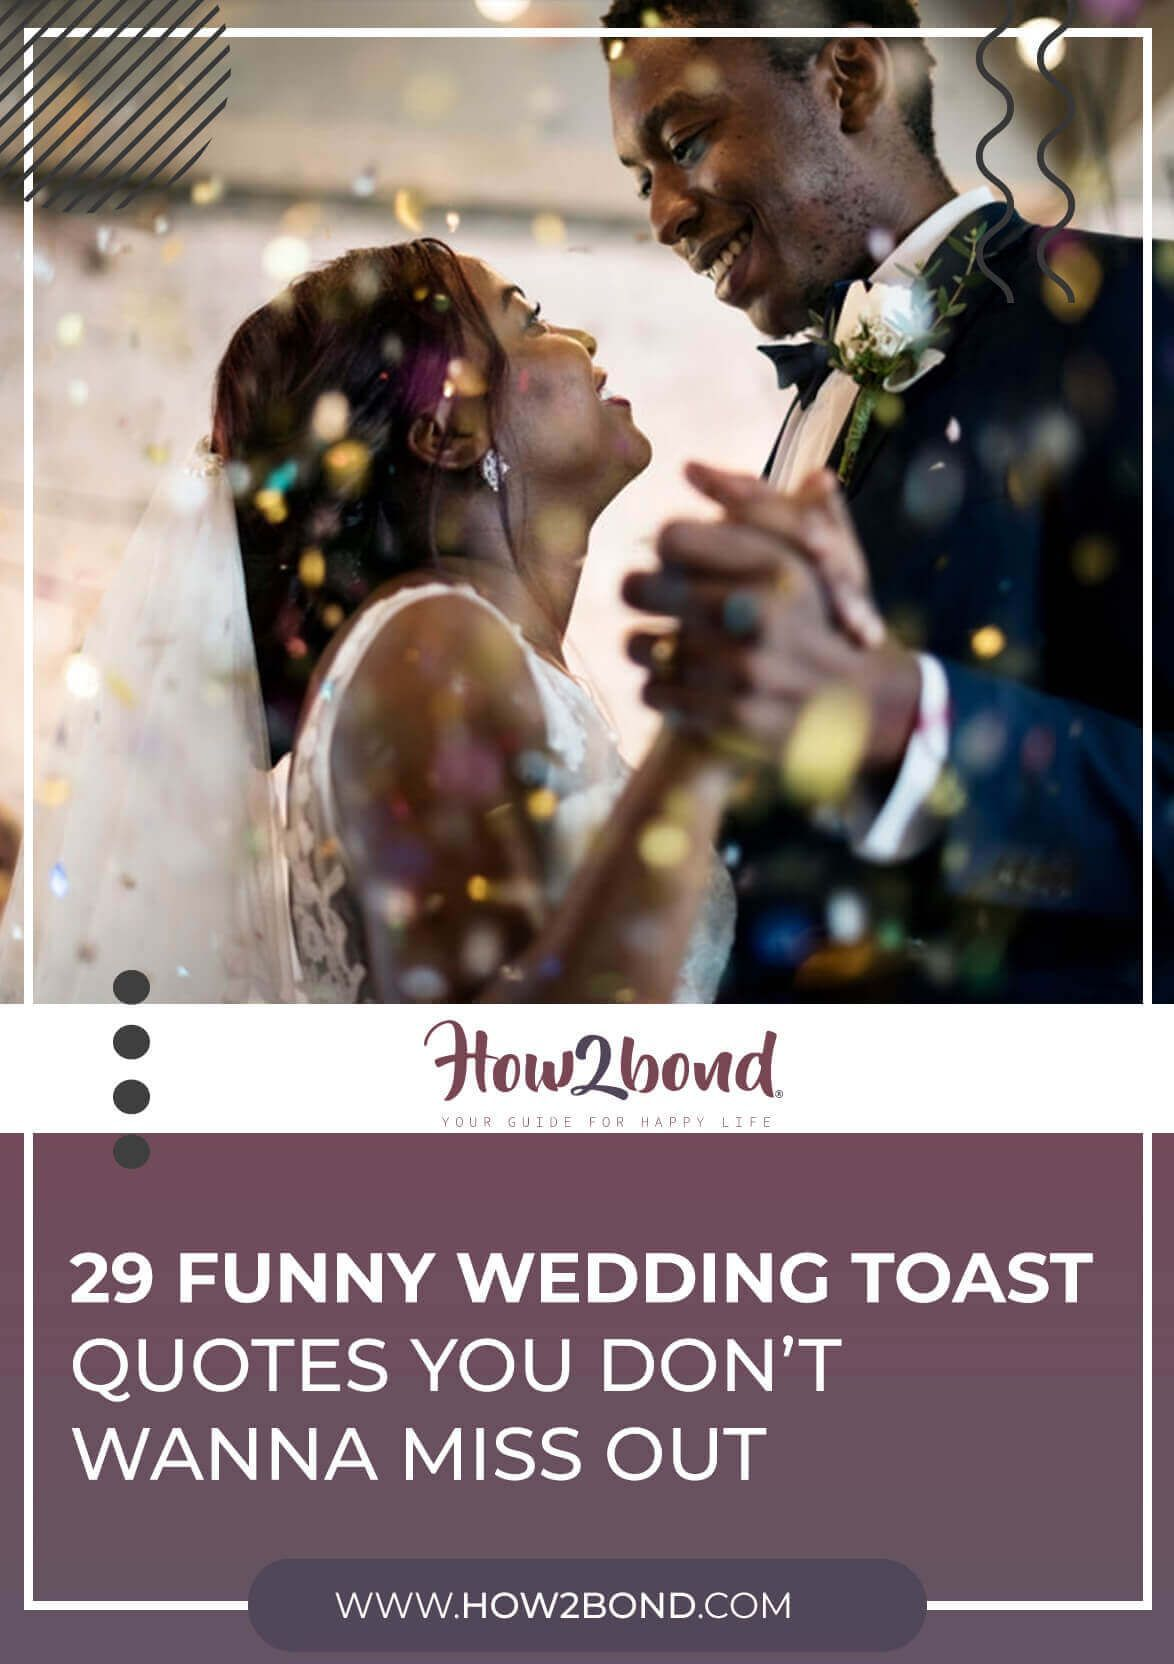 Don S Miss These Funny Wedding Toast Quotes Family Getting Married Married Couple Issues Reads Fo Funny Wedding Toasts Wedding Toast Quotes Wedding Toasts